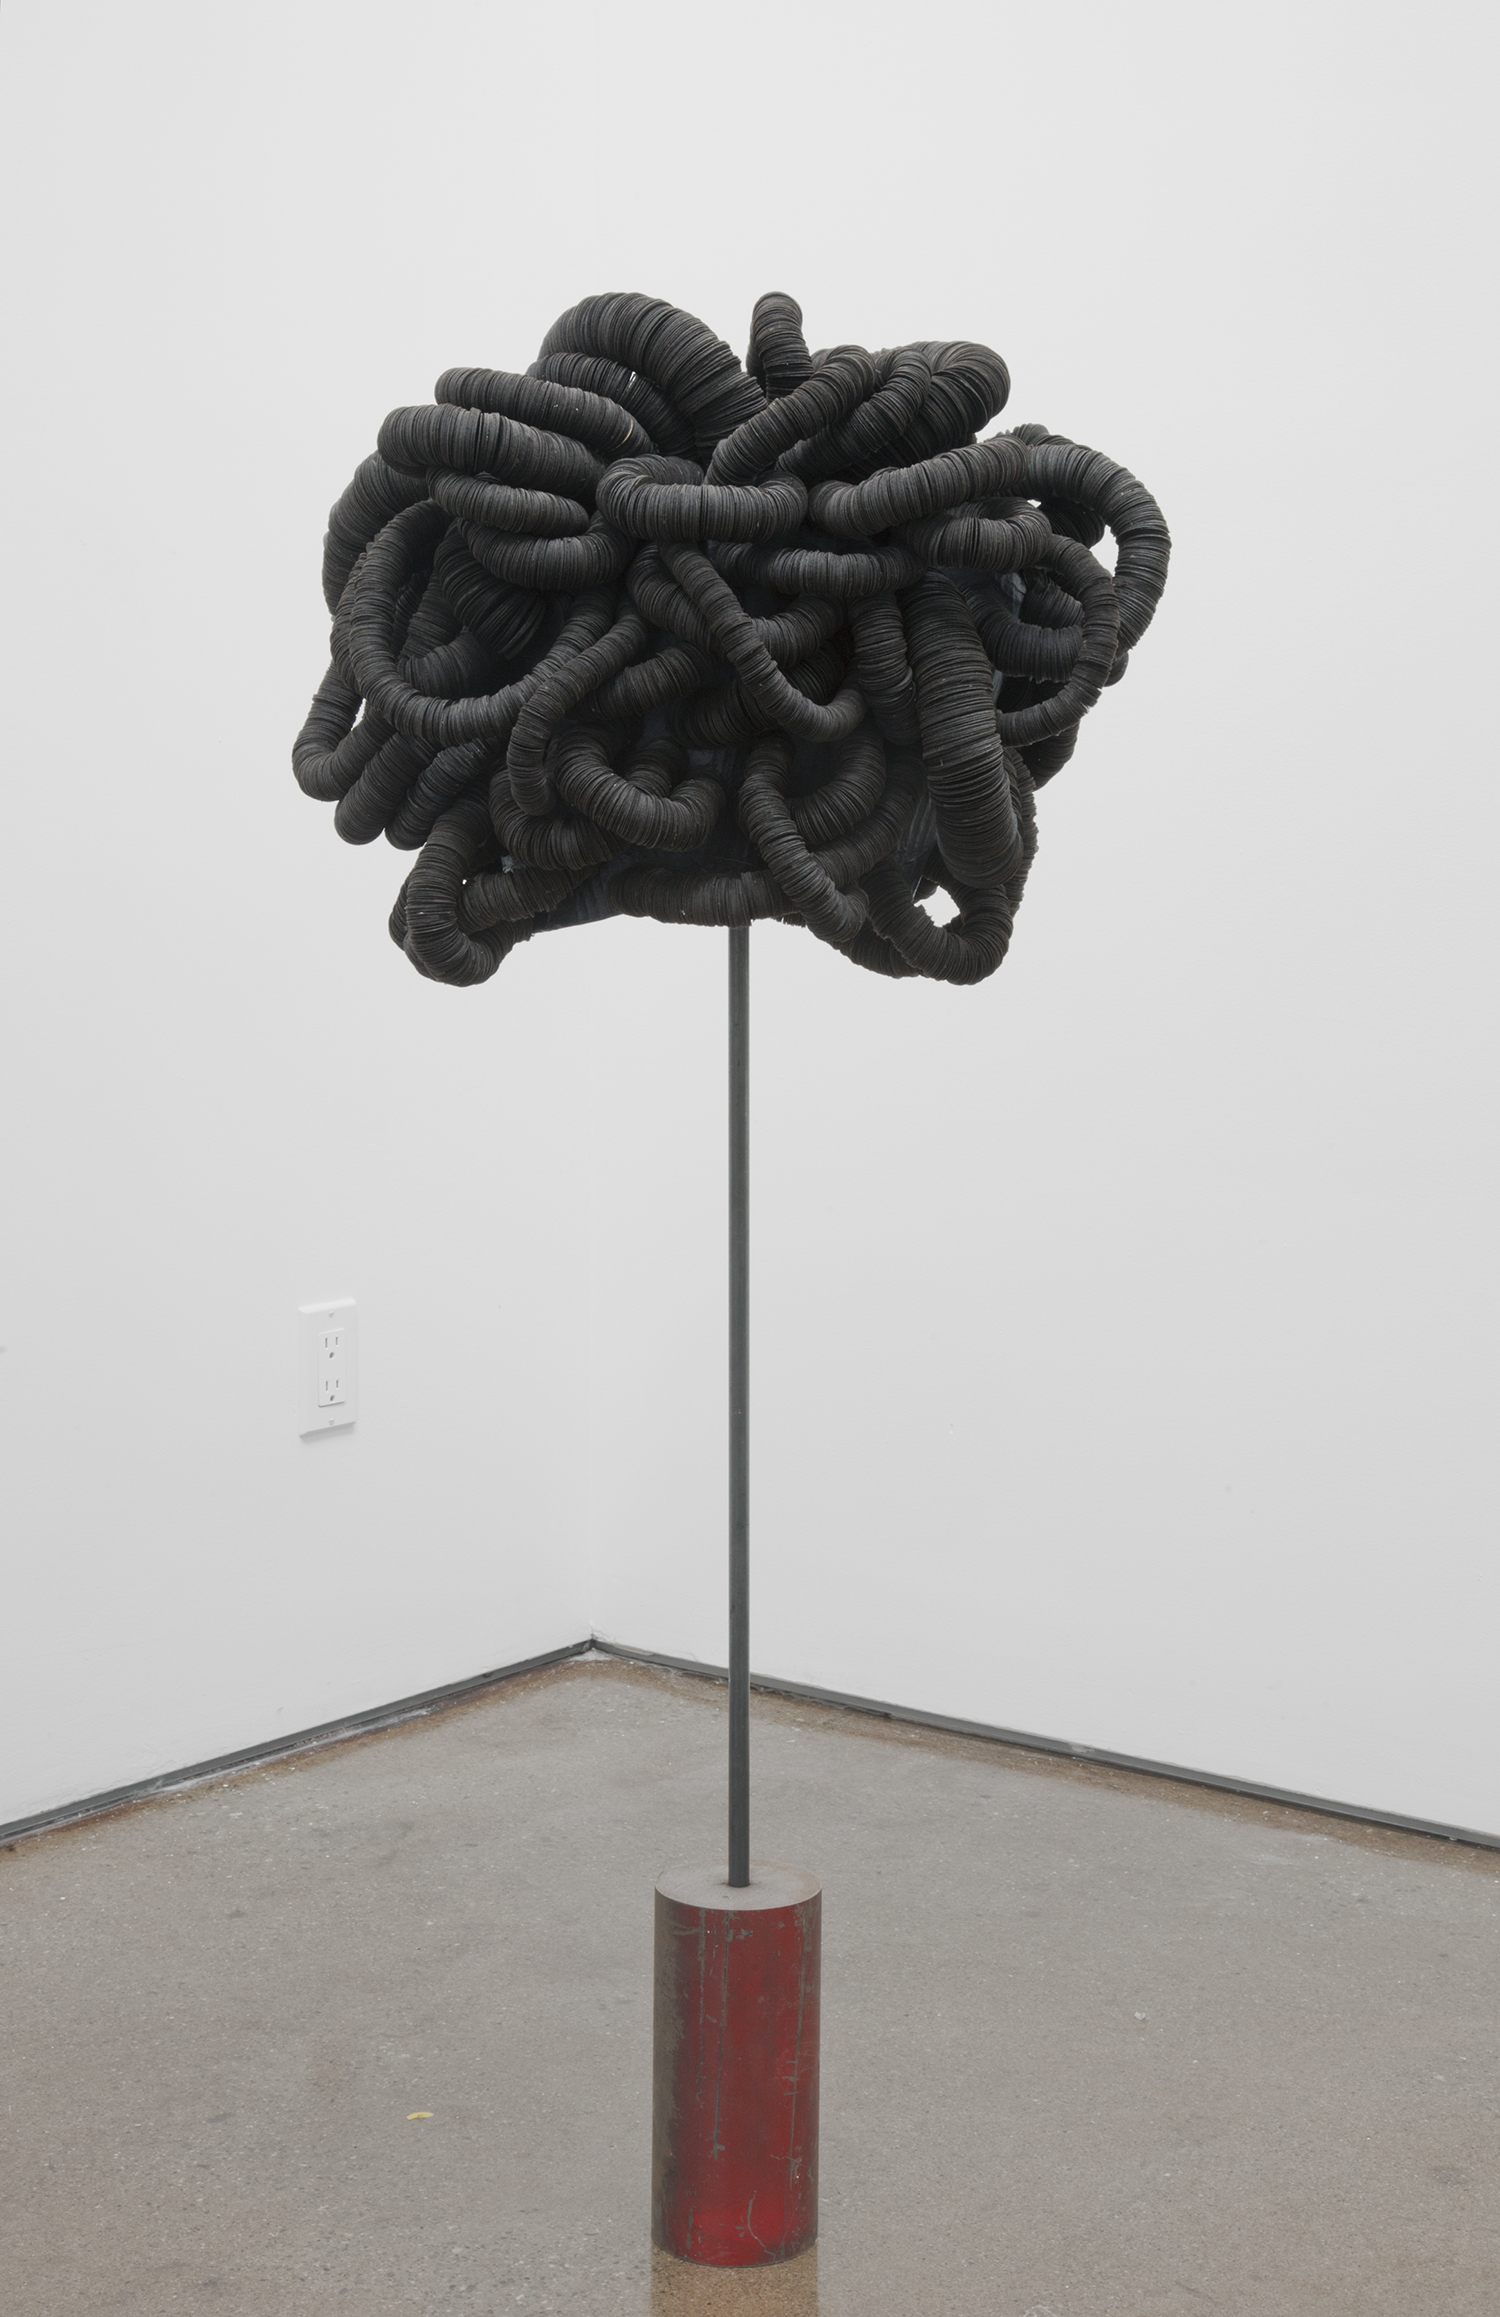 looped form  2017 tar paper, paper, wire, steel  48 x 20 x 12 inches